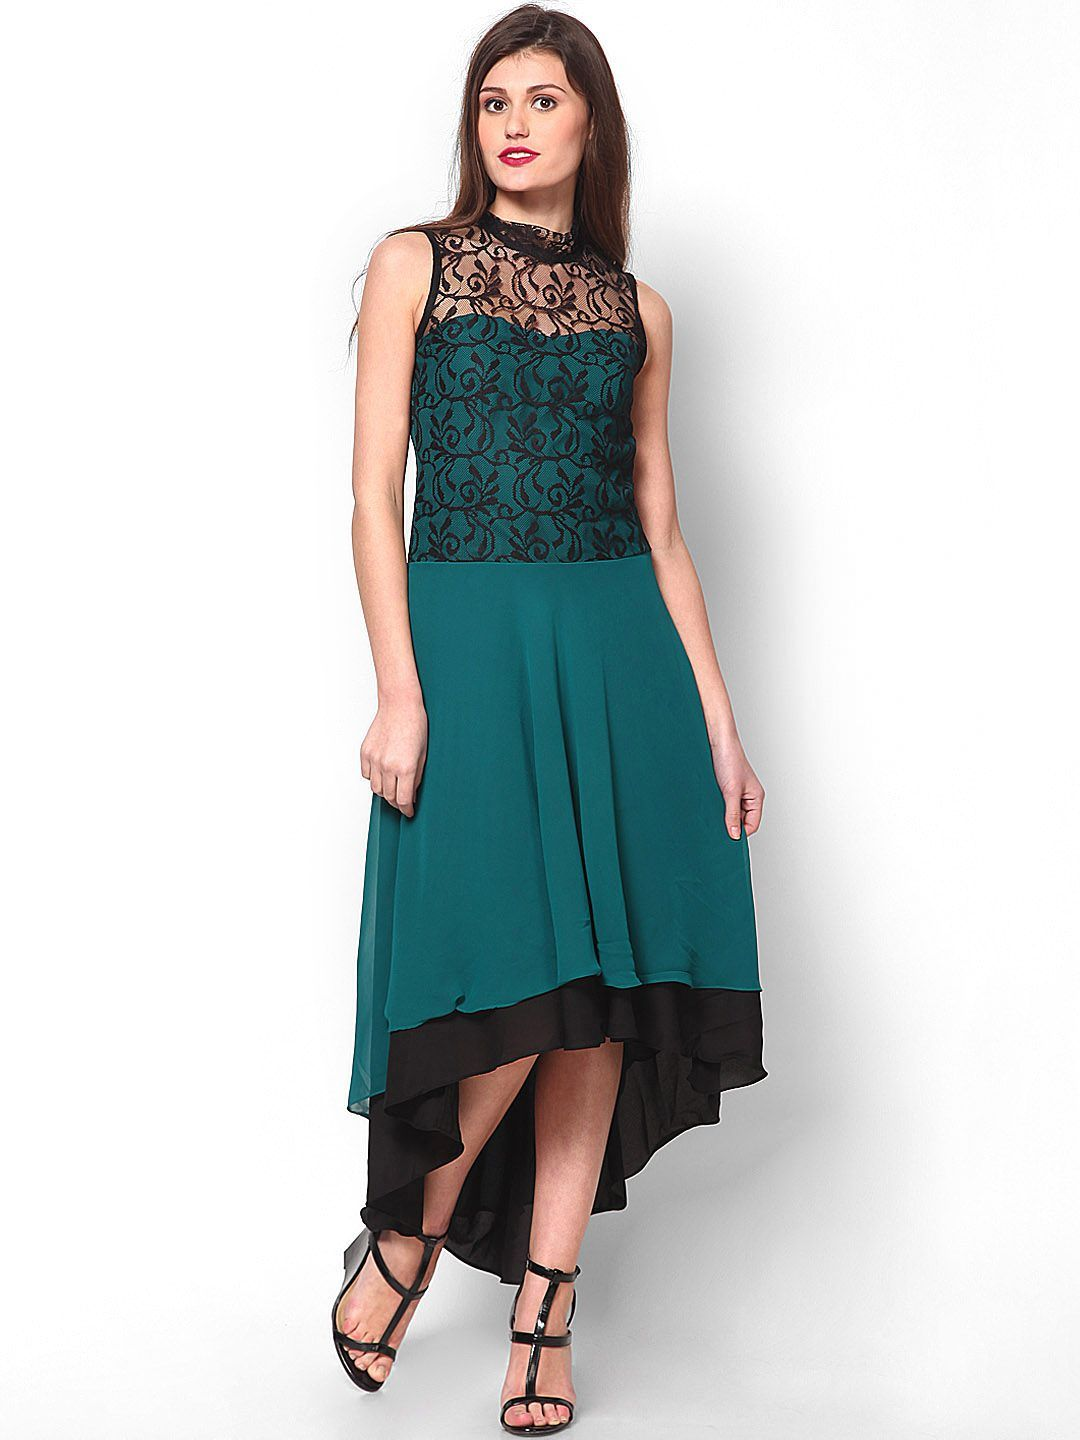 0fc0a0219cce6 Buy Athena Teal Green   Black High Low Dress - 379 - Apparel for Women